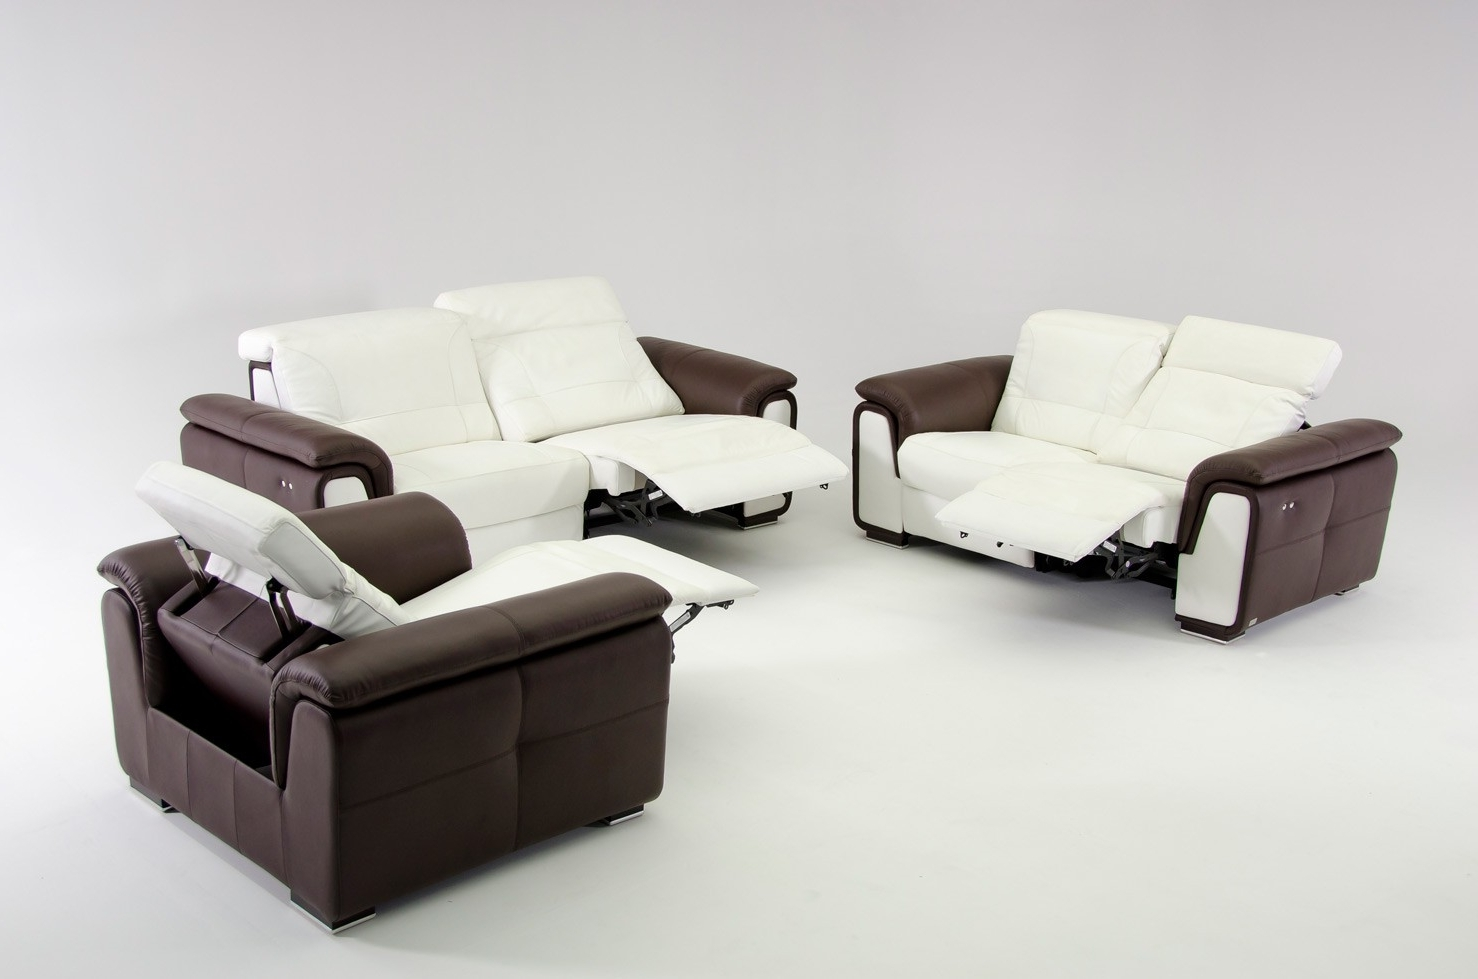 2019 Sofa : Sofa Recliners For Sale Single Sofa Sleeper Chair Single Pertaining To Sectional Sofas With Electric Recliners (View 1 of 20)